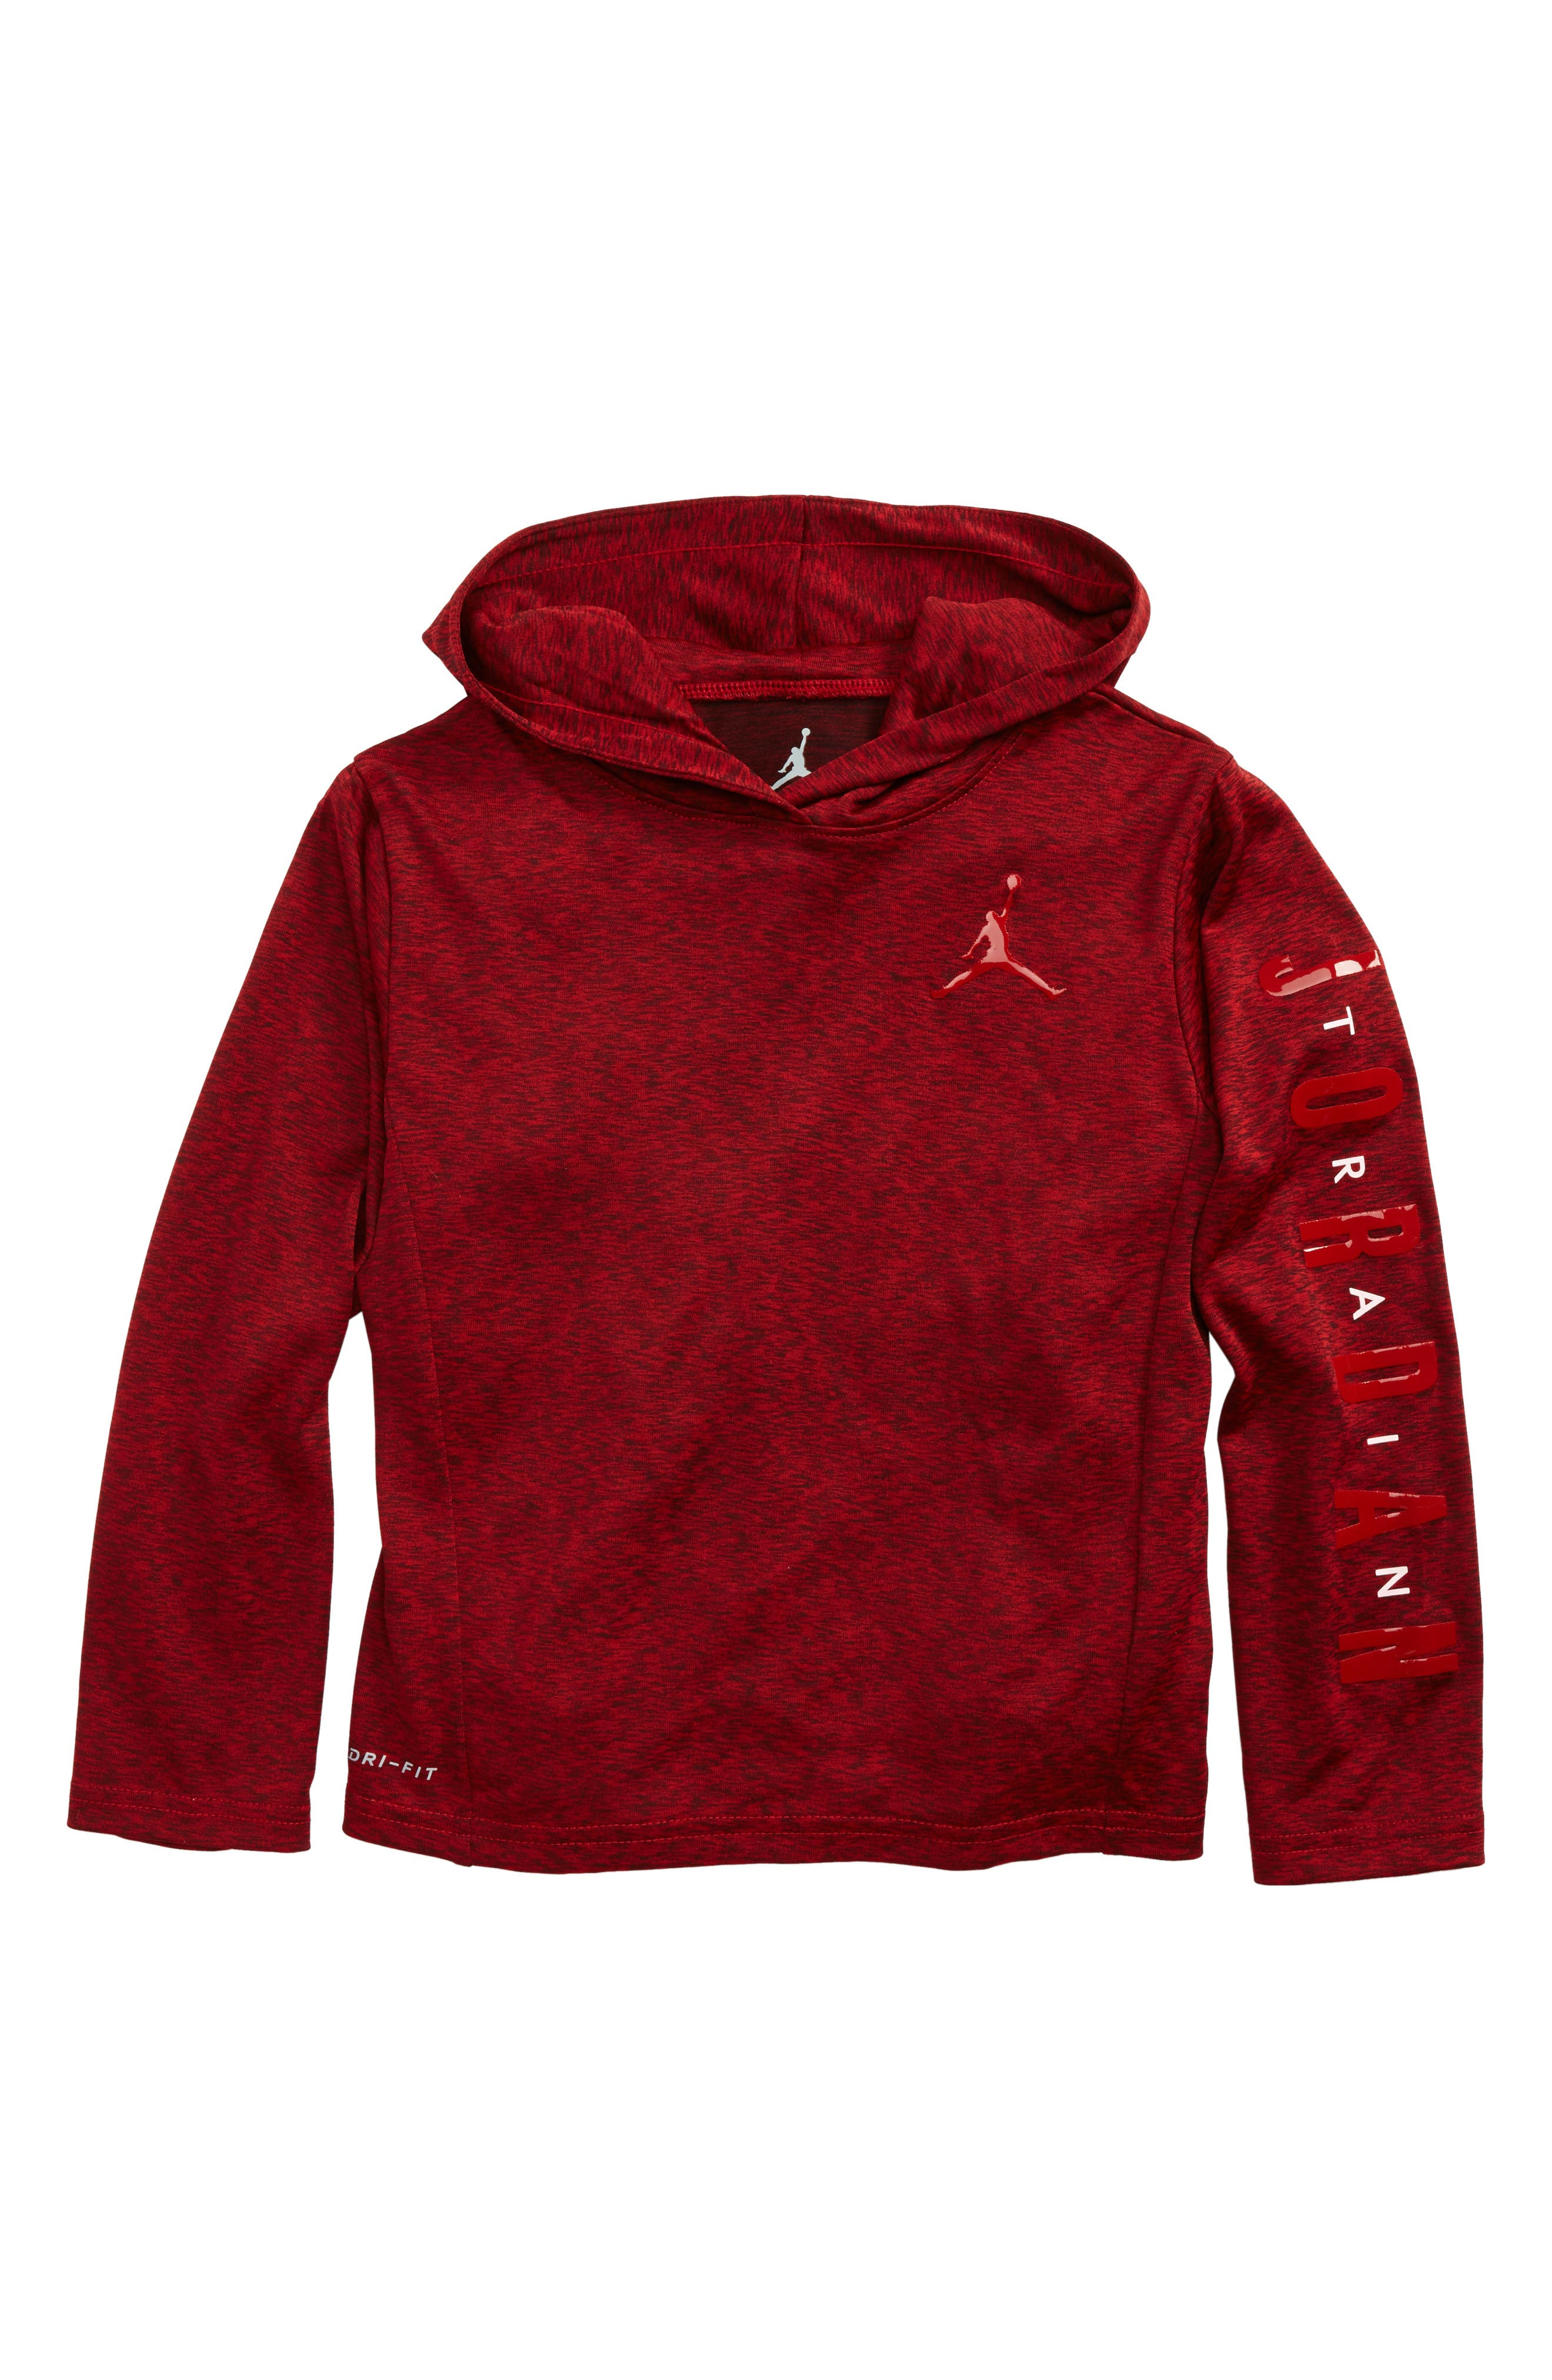 Alternate Image 1 Selected - Jordan Dri-FIT Hooded T-Shirt (Toddler Boys & Little Boys)